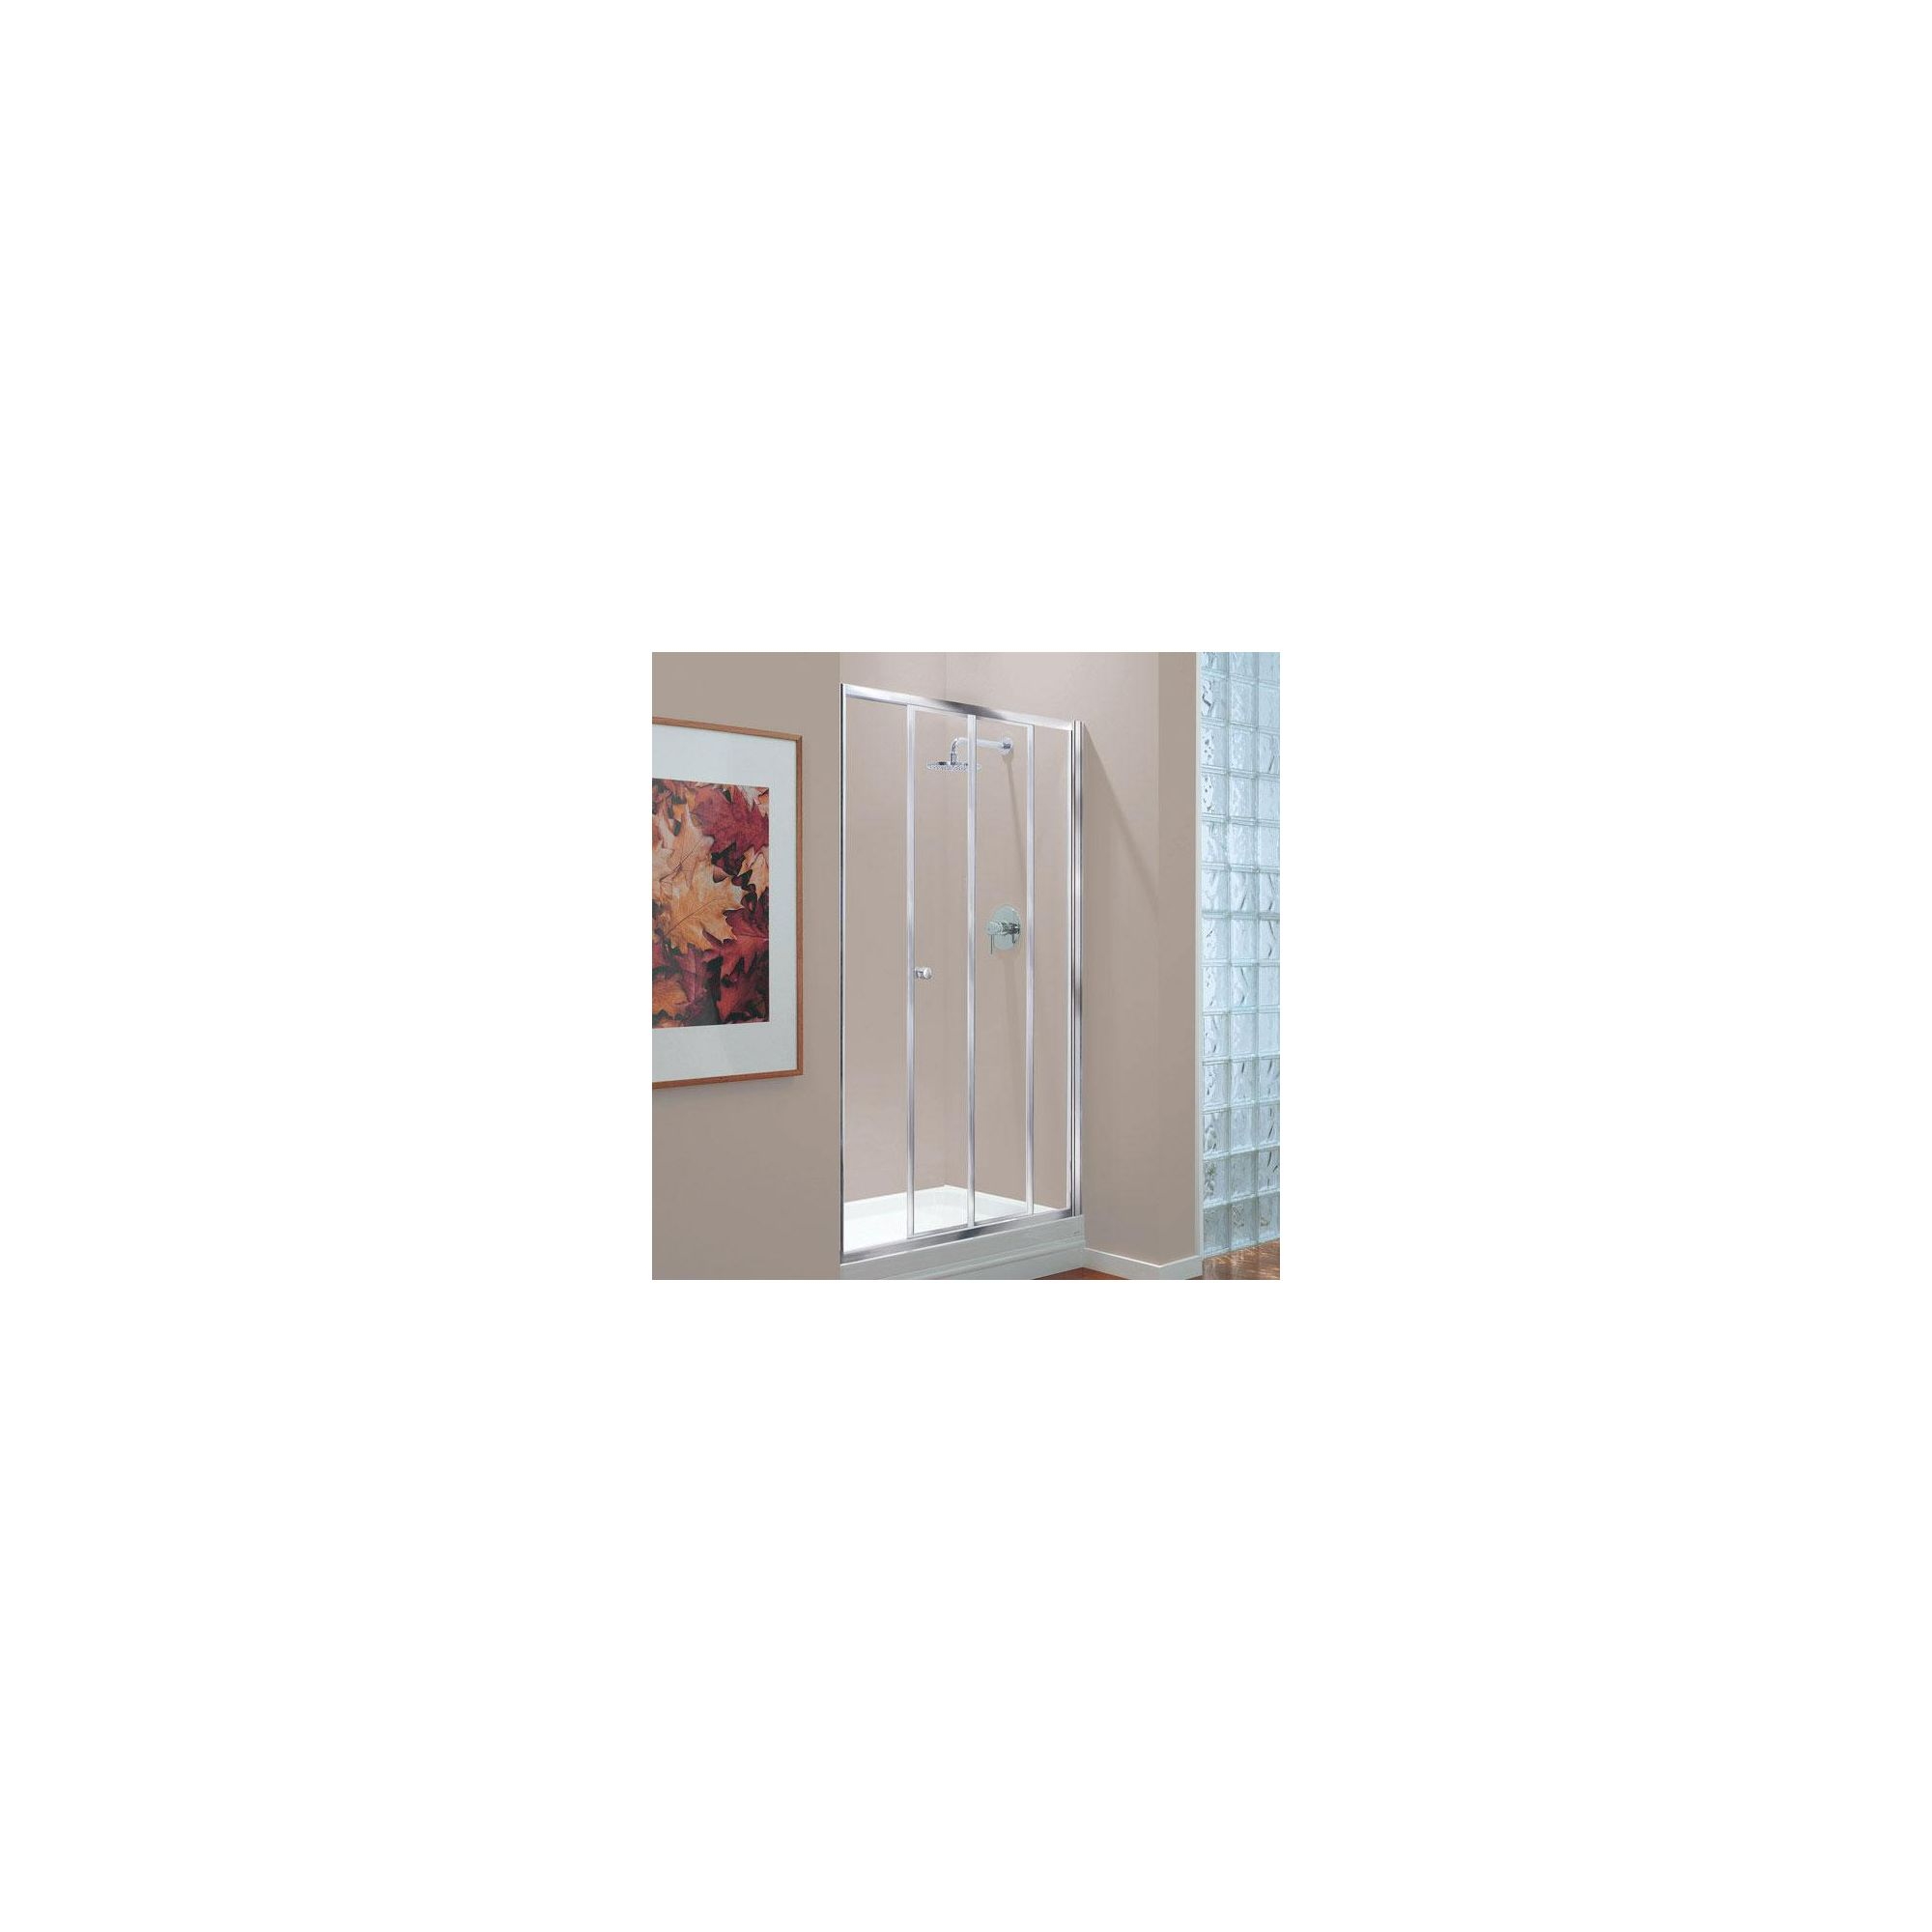 Coram GB Sliding Door Shower Enclosure, 1200mm x 800mm, Standard Tray, 4mm Glass, Chrome Frame at Tesco Direct